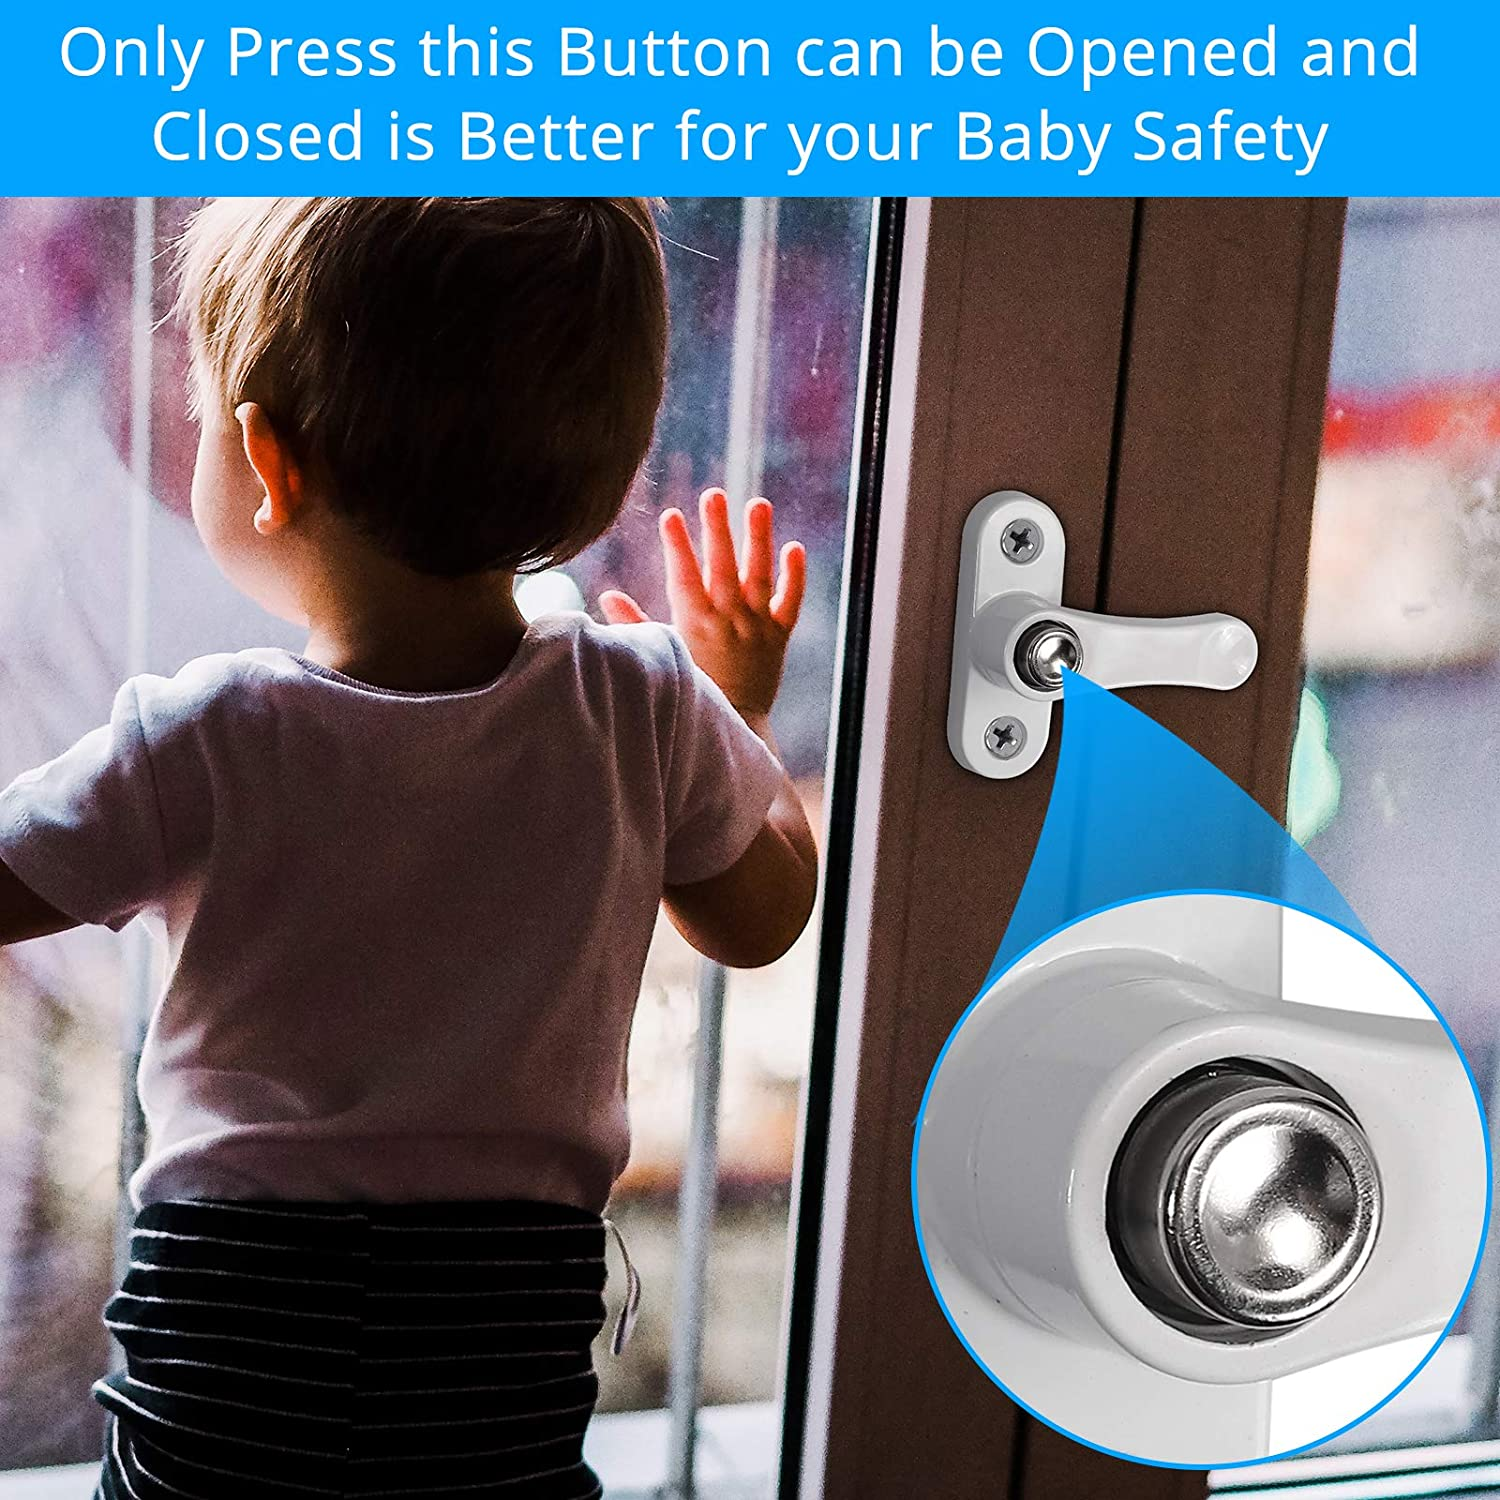 eSynic 4pcs Sash Blocker Jammer UPVC Window Door Restrictor Baby Security Lock with Home Security Button Lock Function for Home Child Baby Safety-White